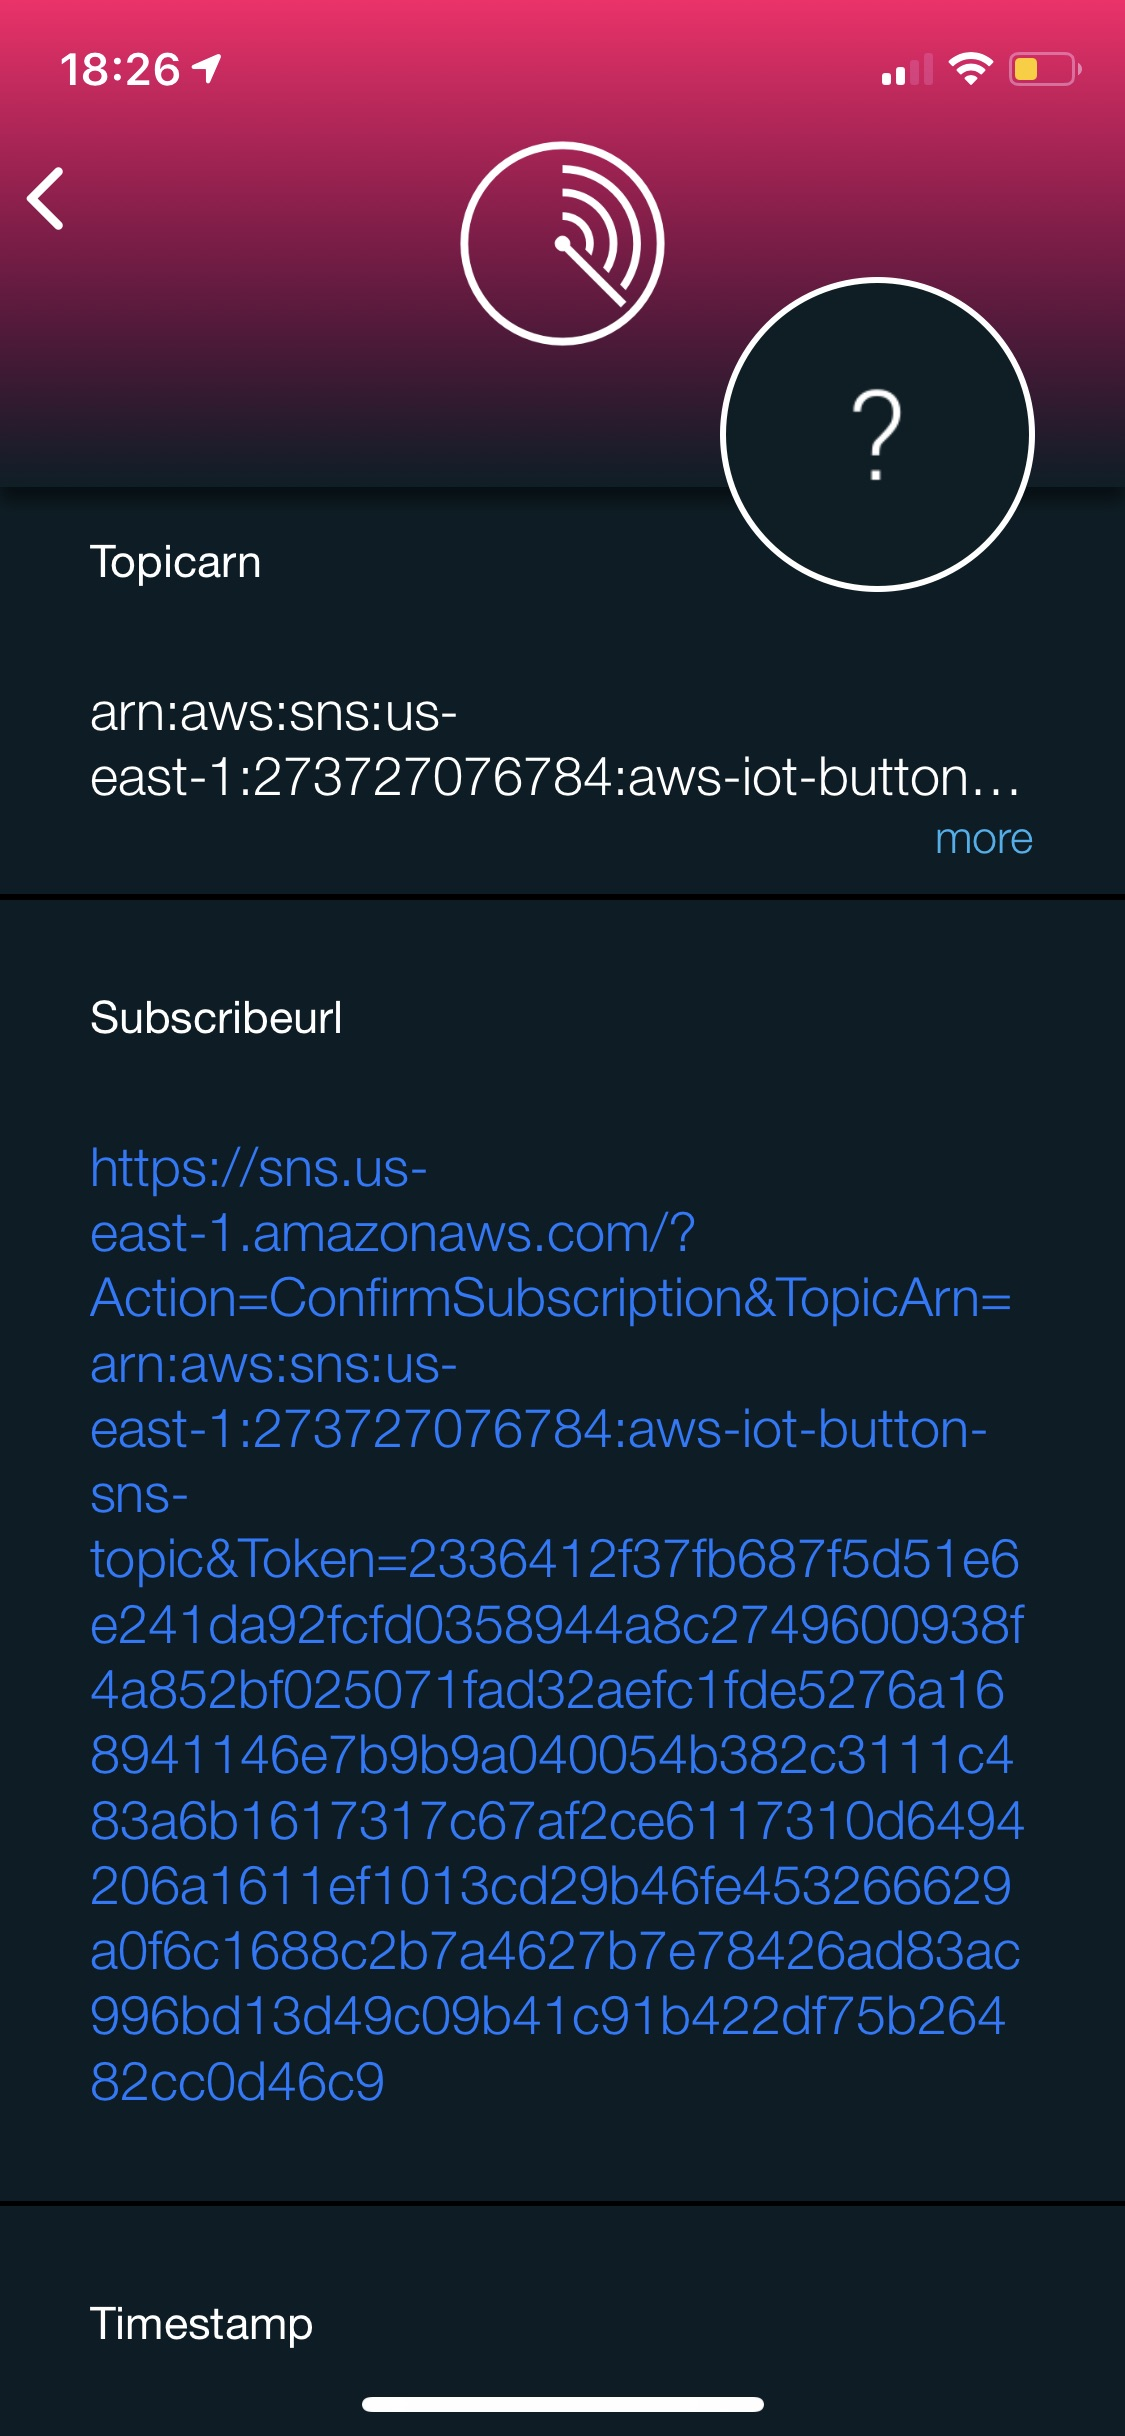 SIGNL4 | Setting up the AWS IoT Button - and SIGNL4